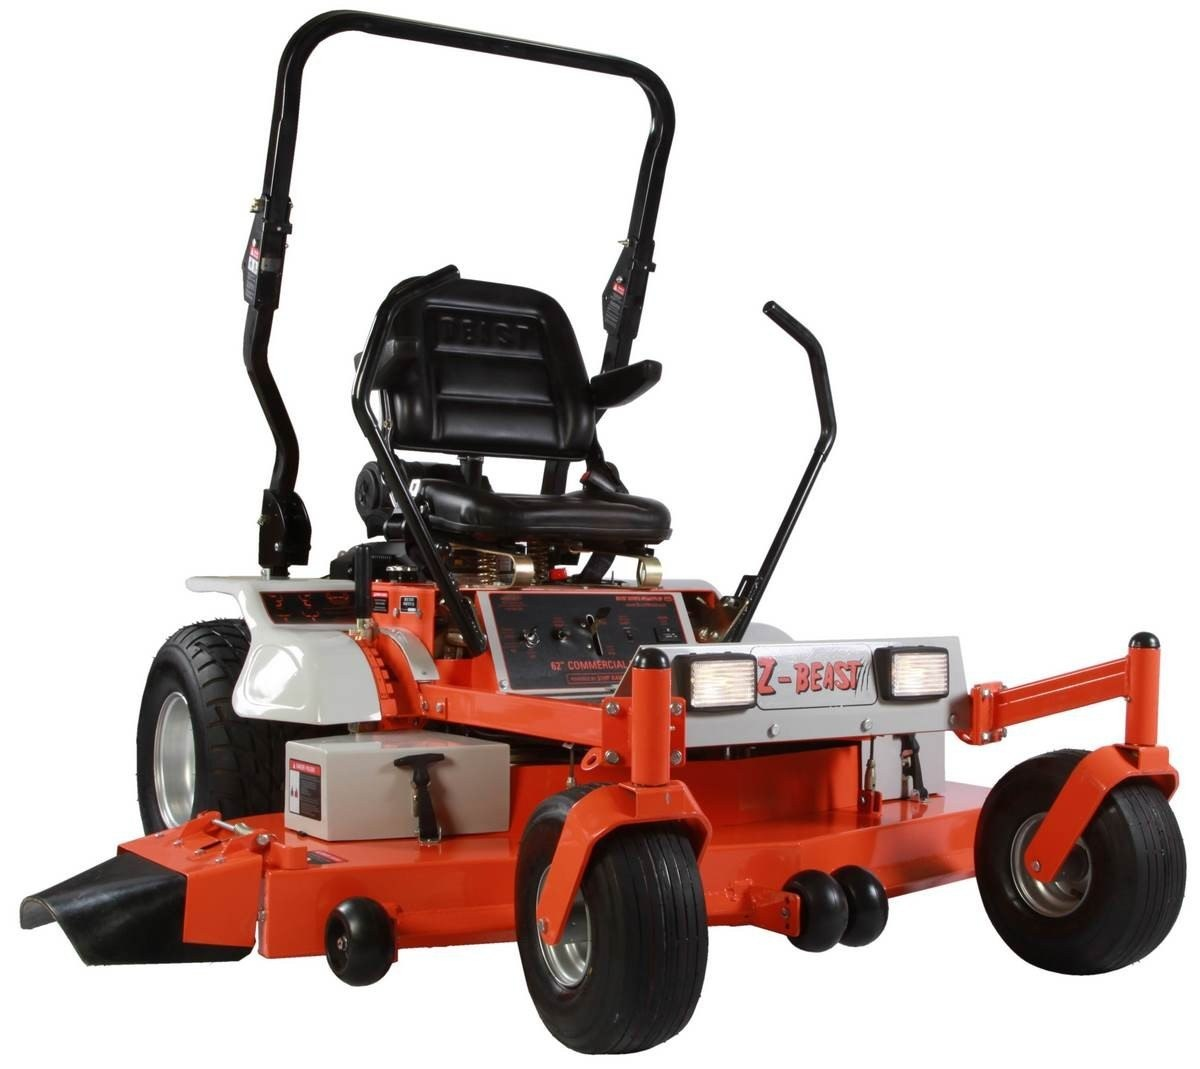 Beast Mowers - Got a fastest speed in the category